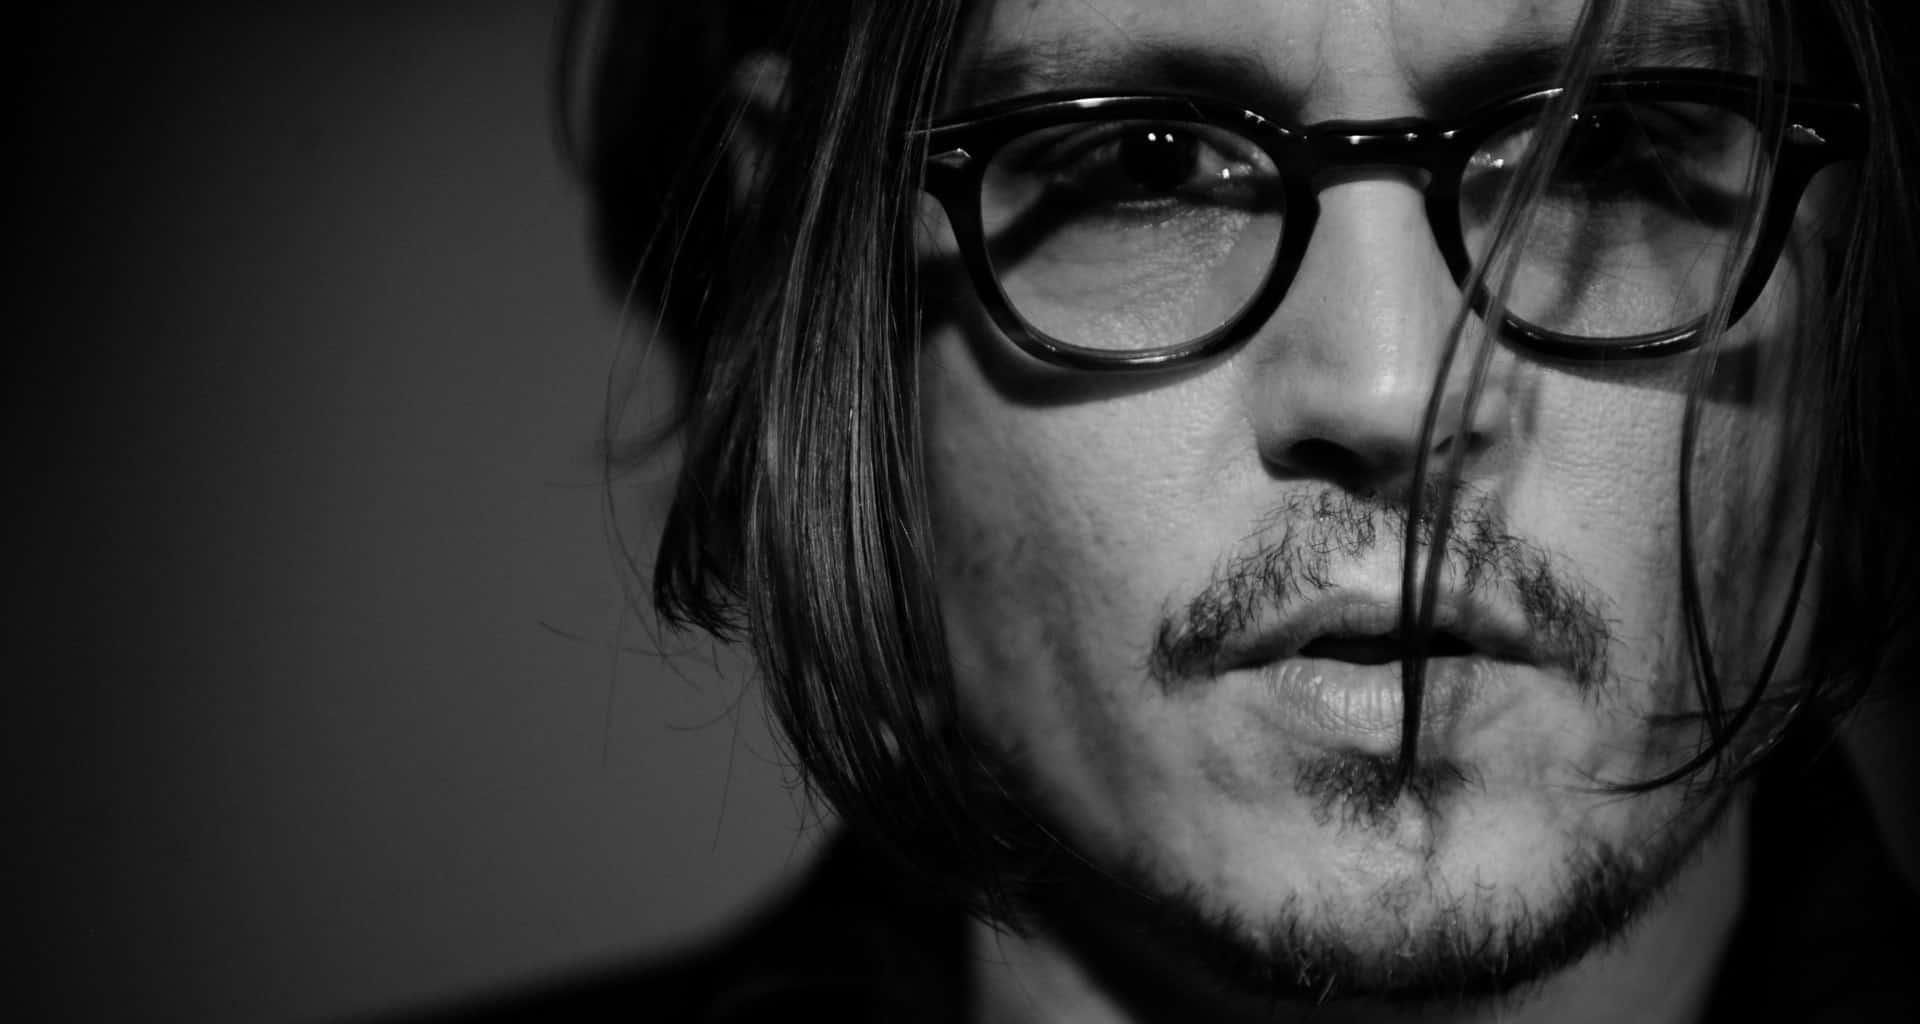 Johnny Depp Submits Declaration In His Own Words Amid Amber Heard Lawsuit - Says Her Bruises Were 'Painted On' And More!